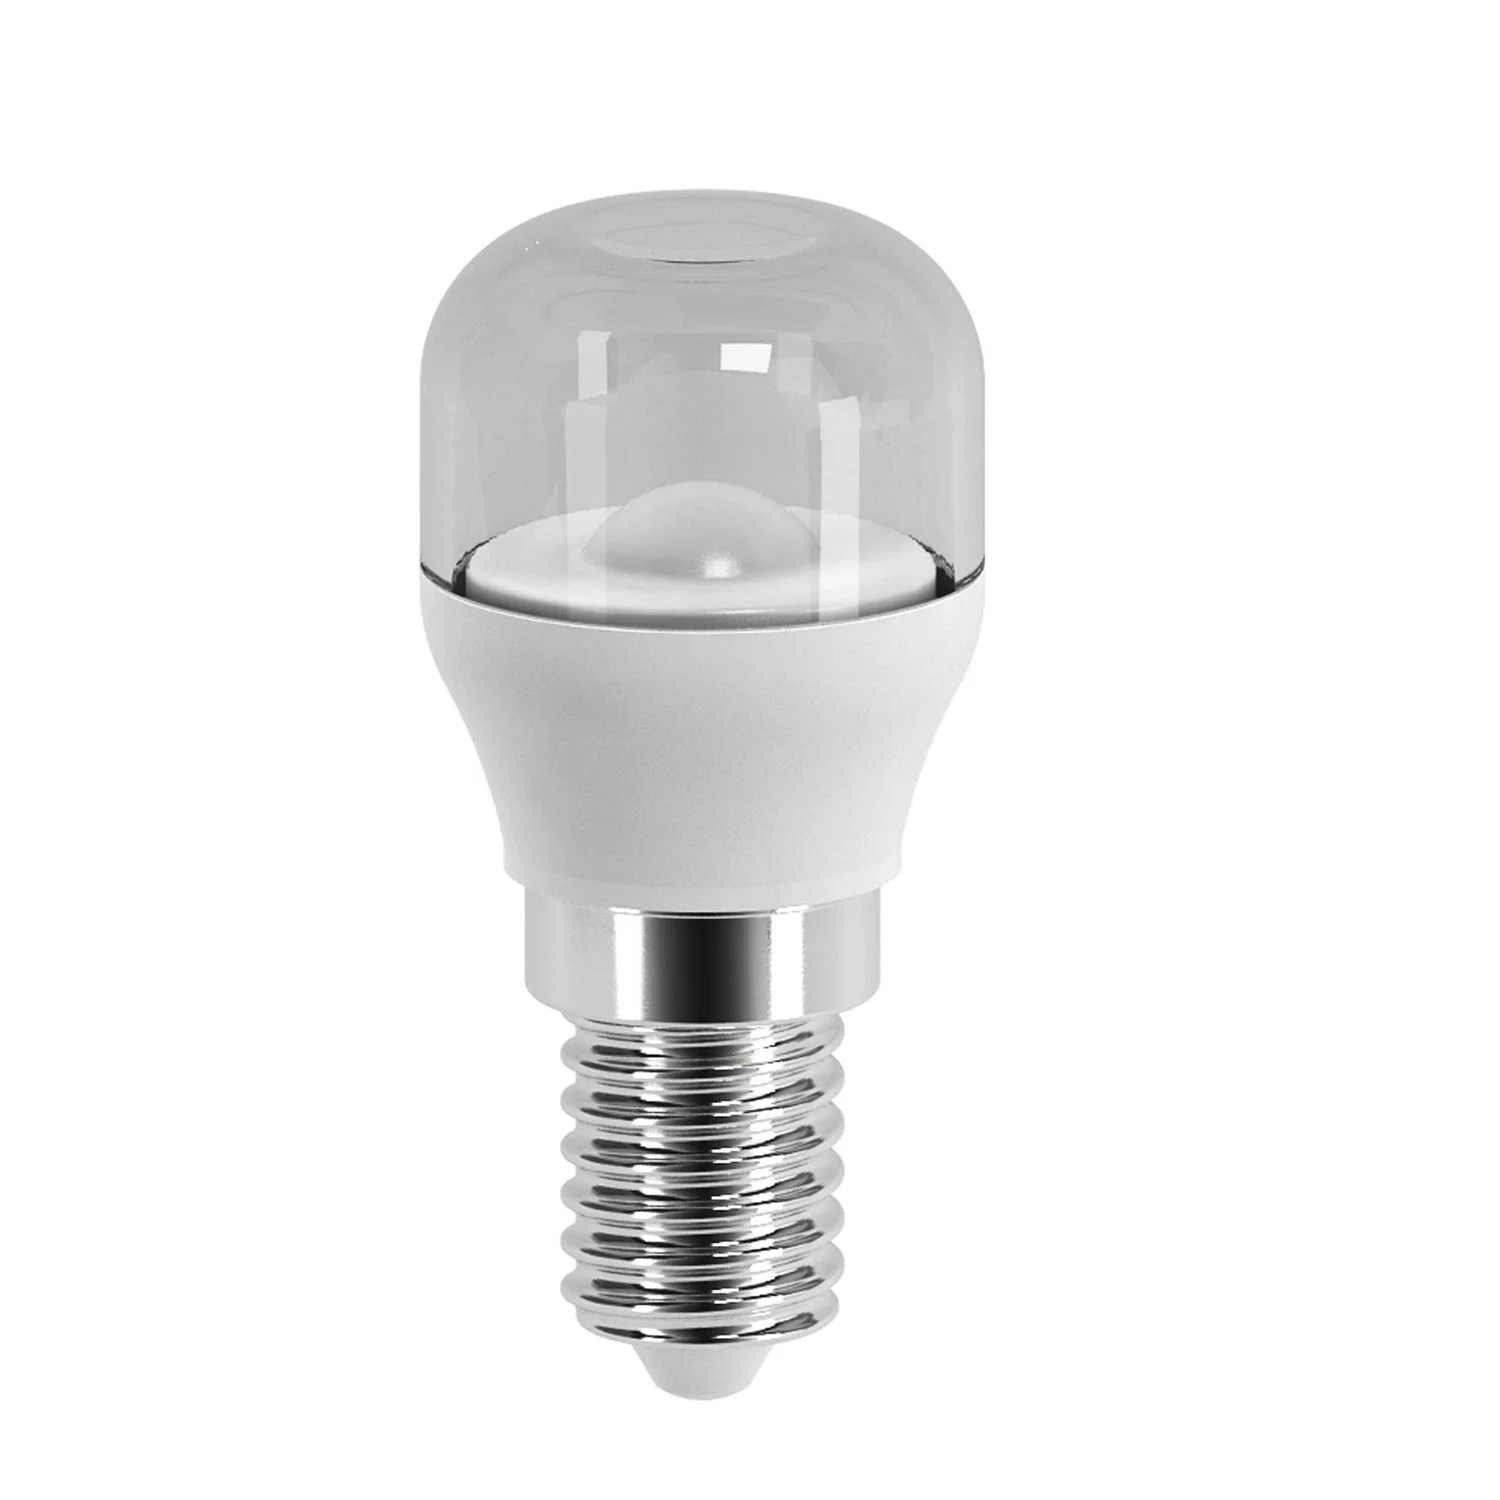 Ampoule Led Multicolore Leroy Merlin Ampoule Led Leroy Cool Good Ampoule Tube Led W Ud Lm